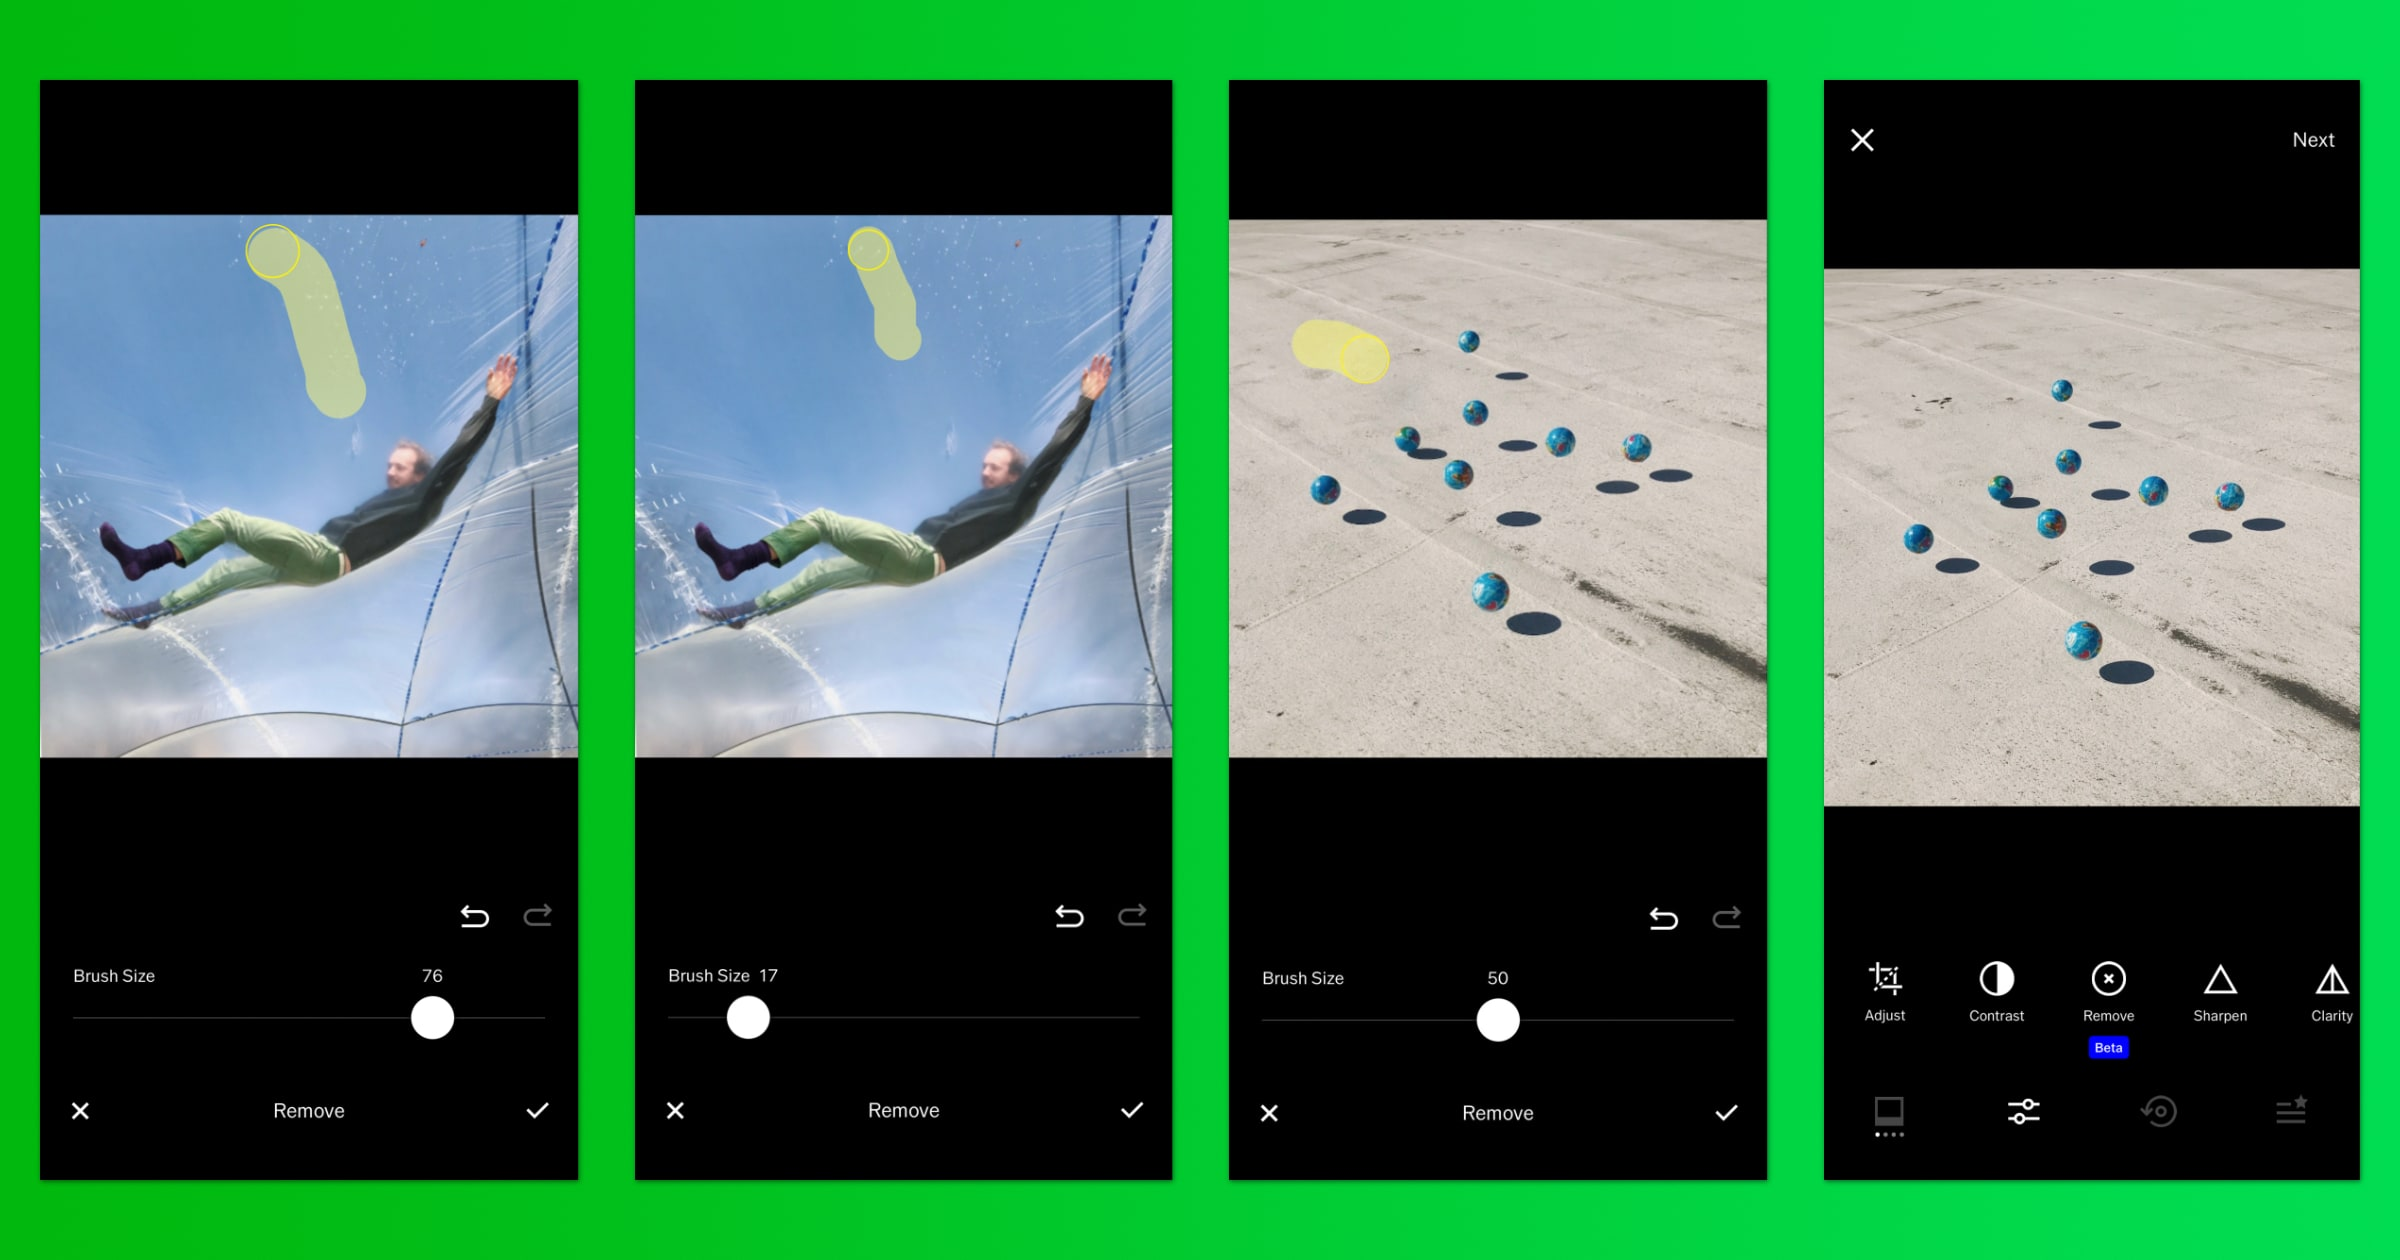 VSCO Introduces a Healing Tool for Members Called 'Remove'